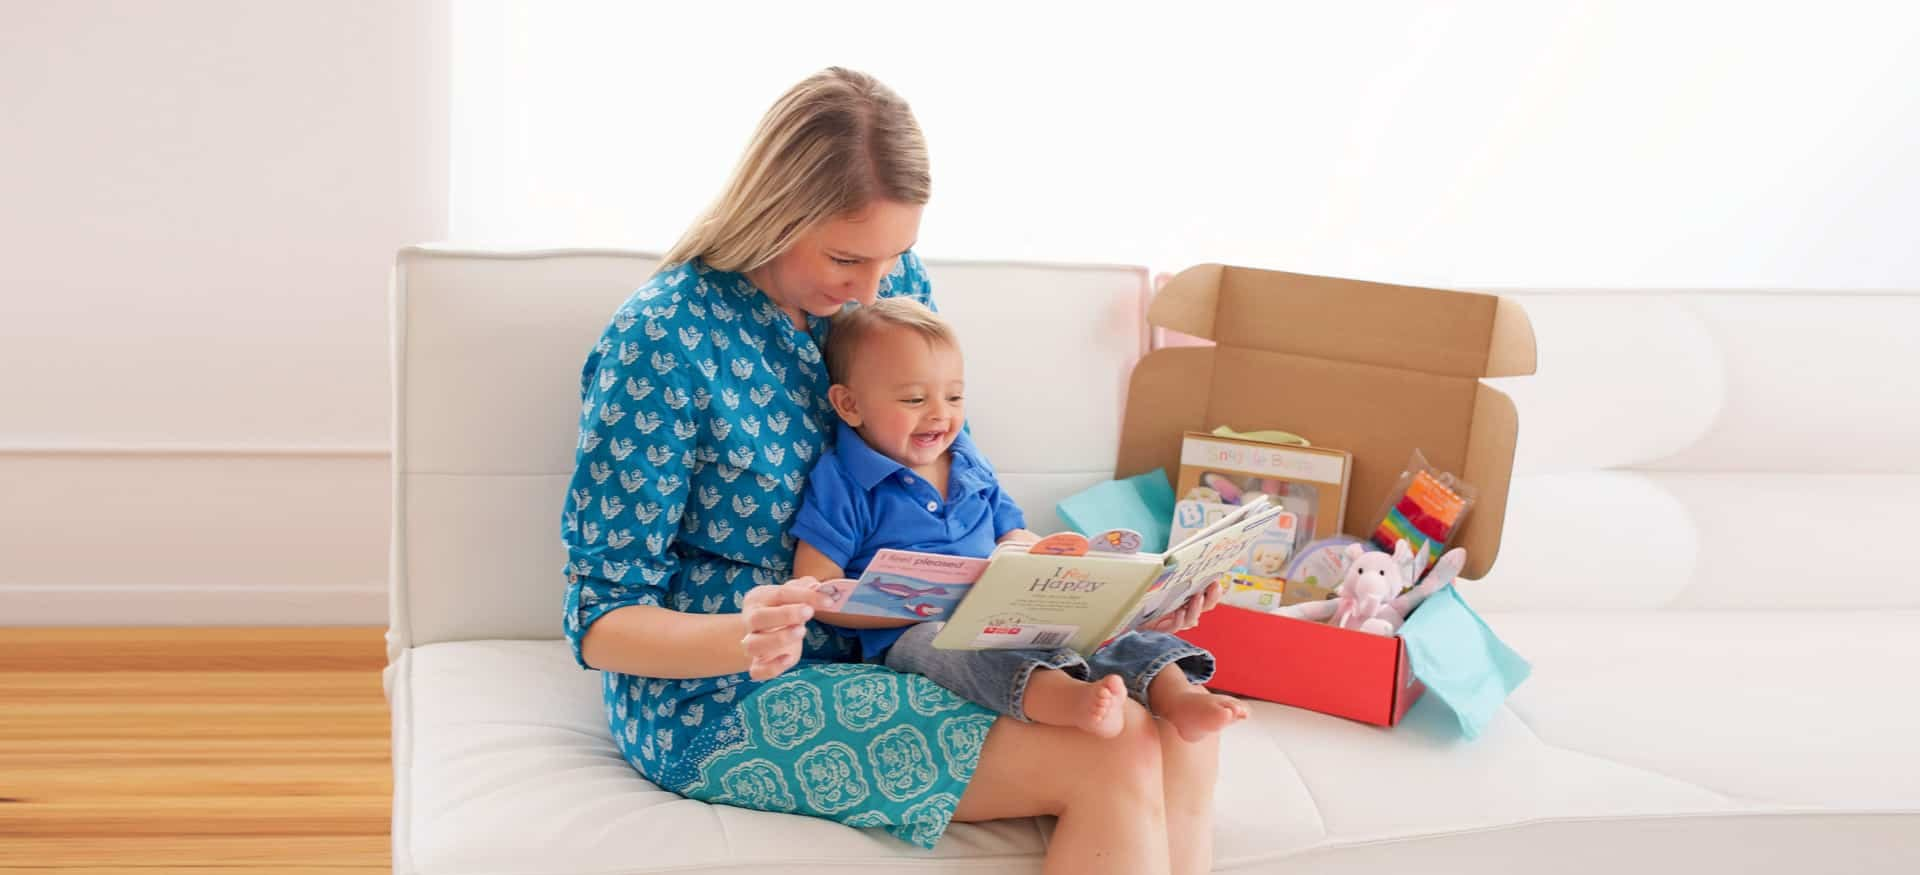 Mother opening a Bluum subscription box with her child